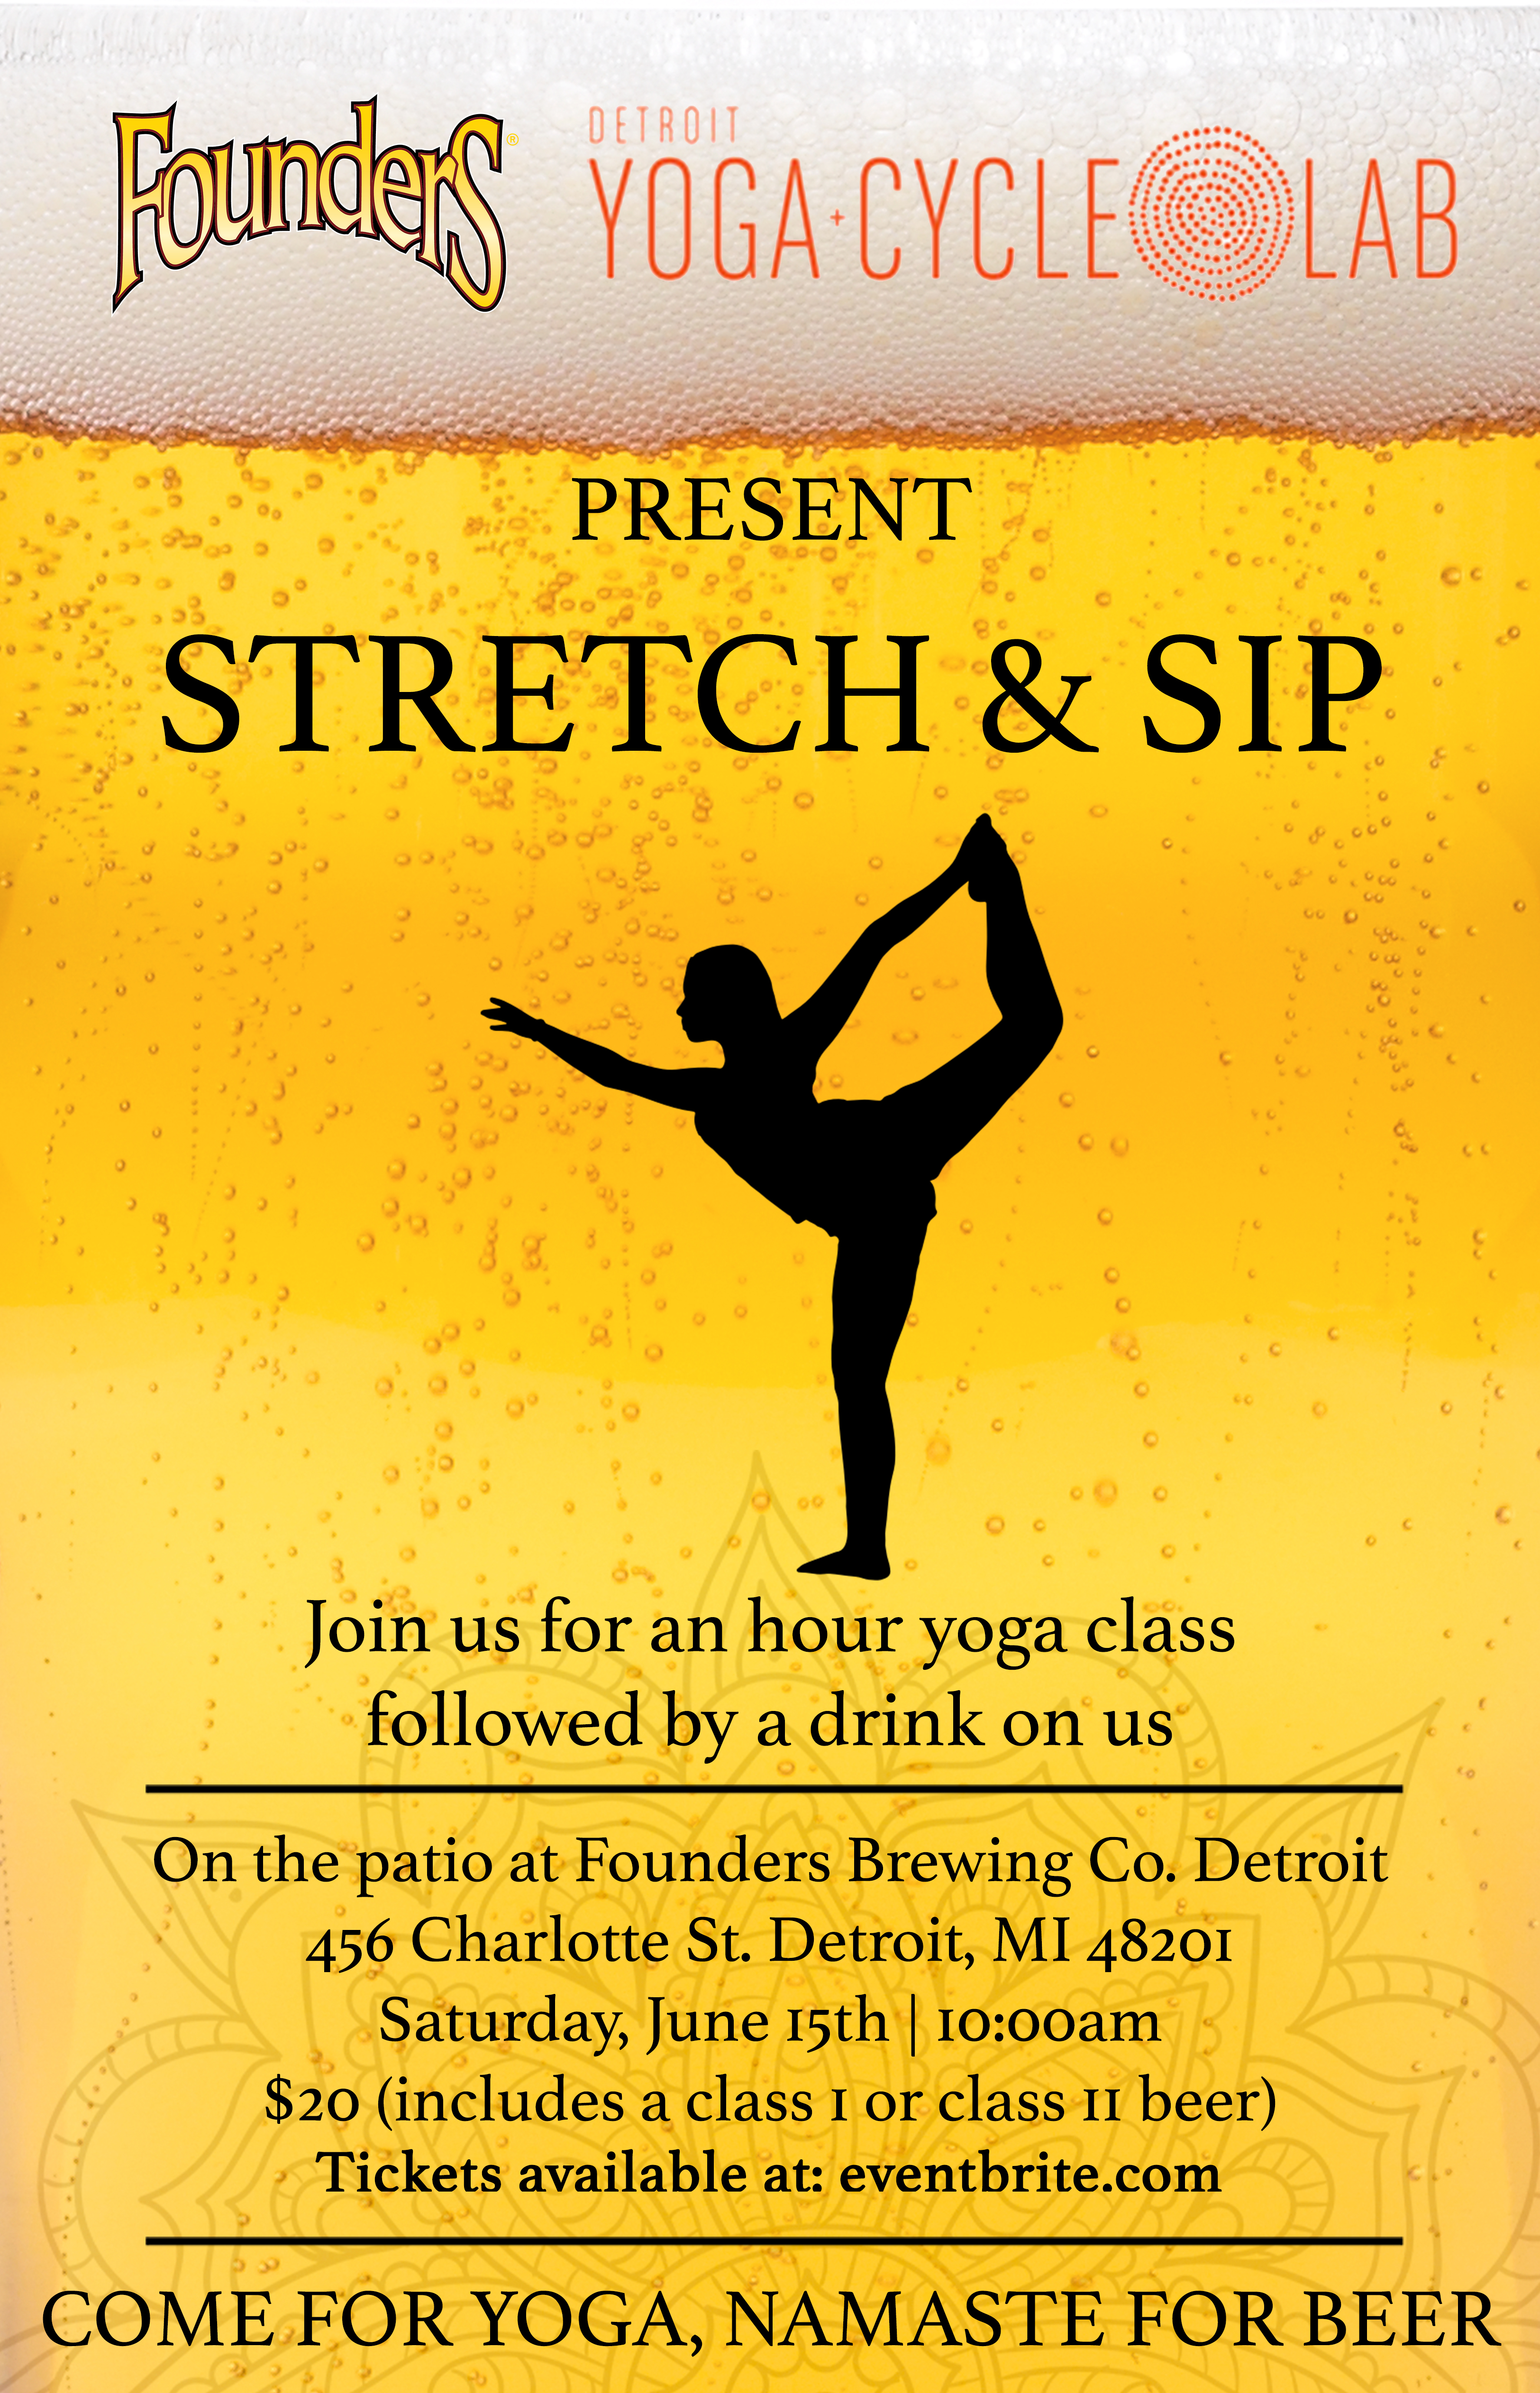 Detroit Yoga Cycle Lab Stretch & Sip event poster